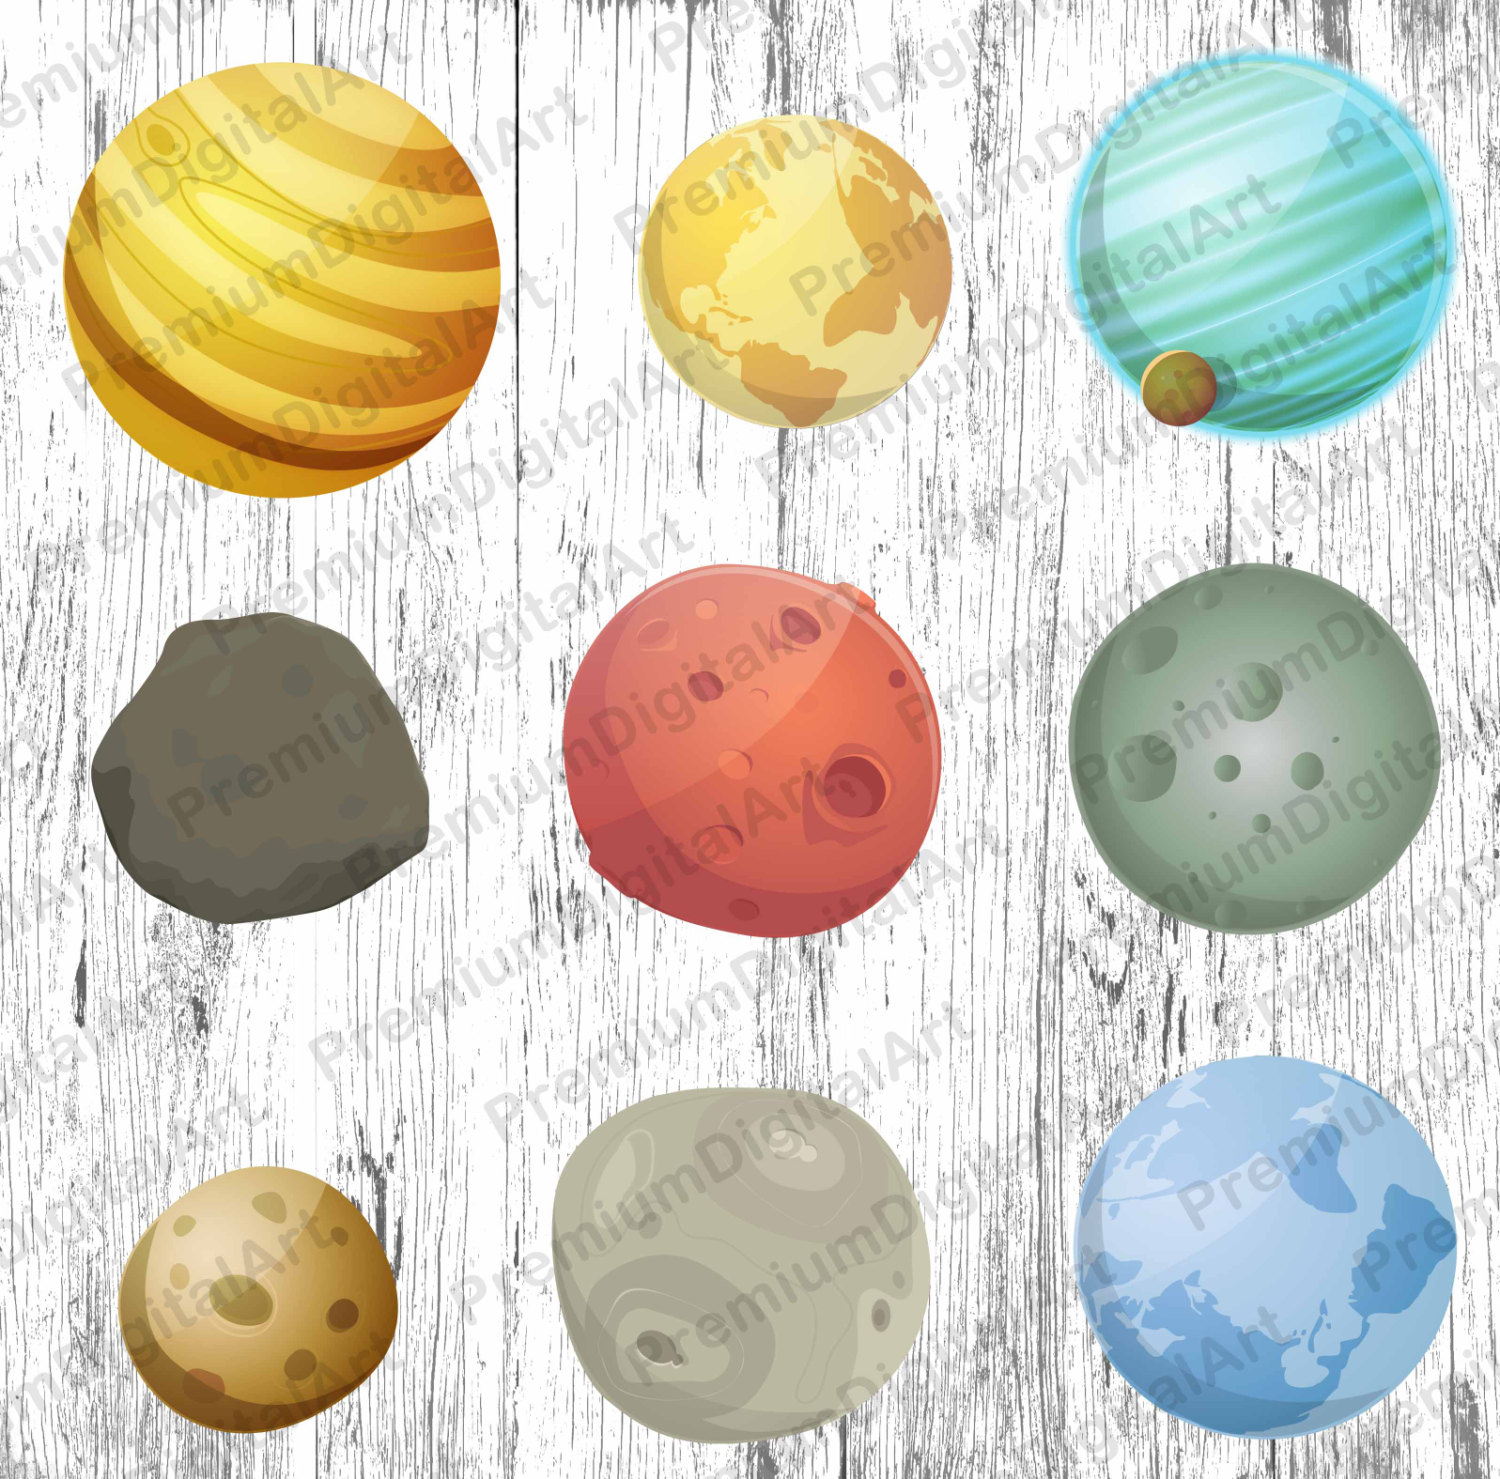 Asteroid clipart star planet Planets file is  clipart